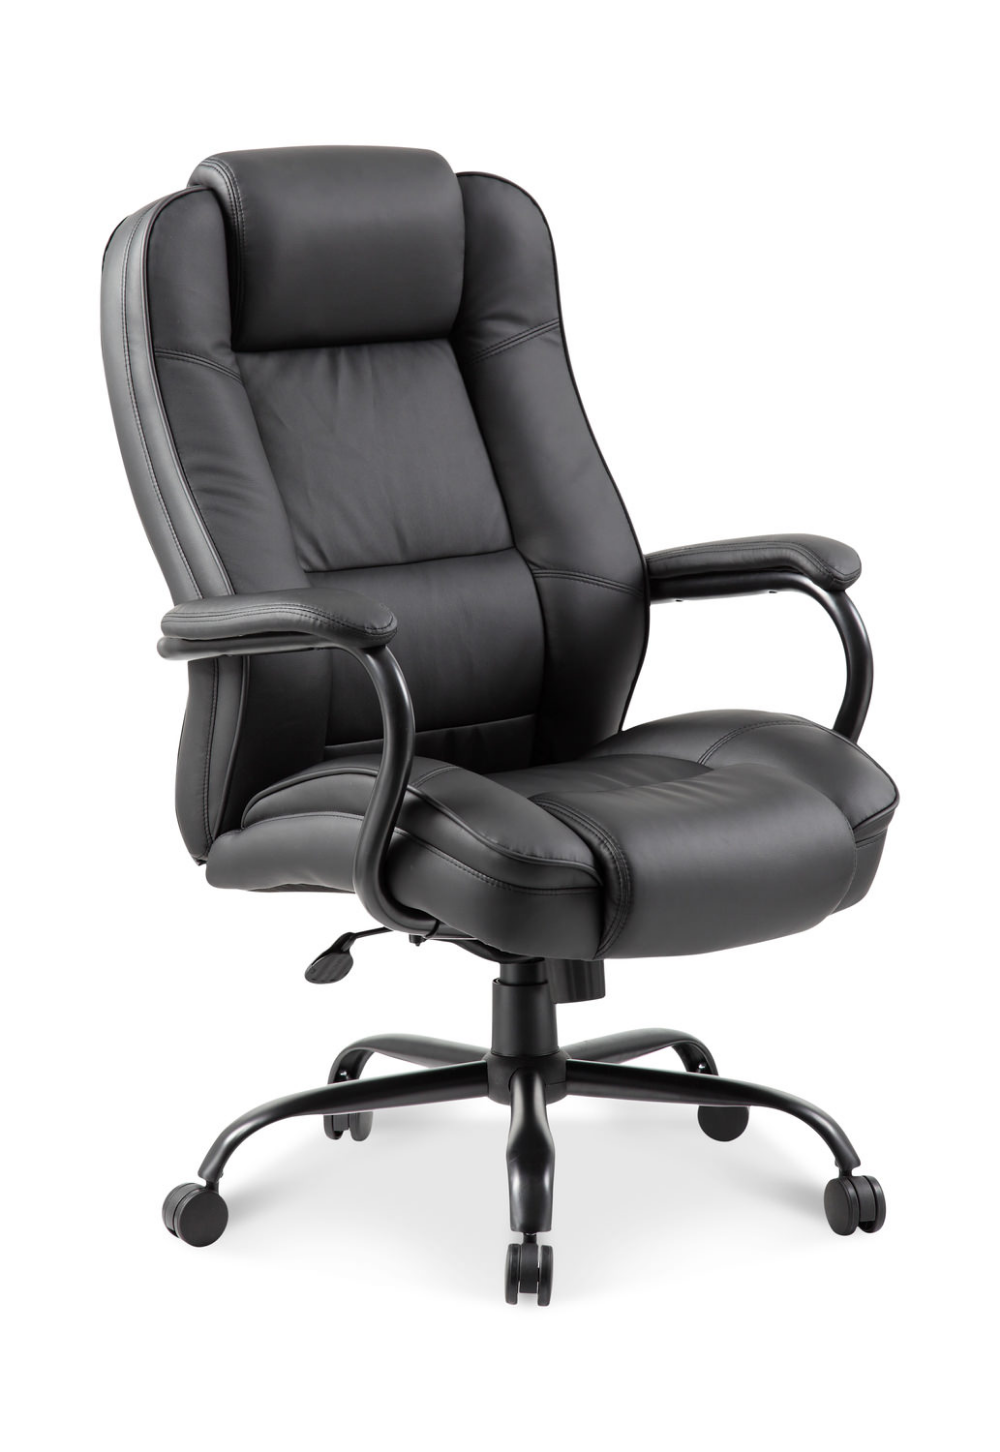 Big And Tall Office Chair By Thomas Cole Hom Furniture Cheap Office Chairs Tall Office Chairs Most Comfortable Office Chair Office chairs for big and tall